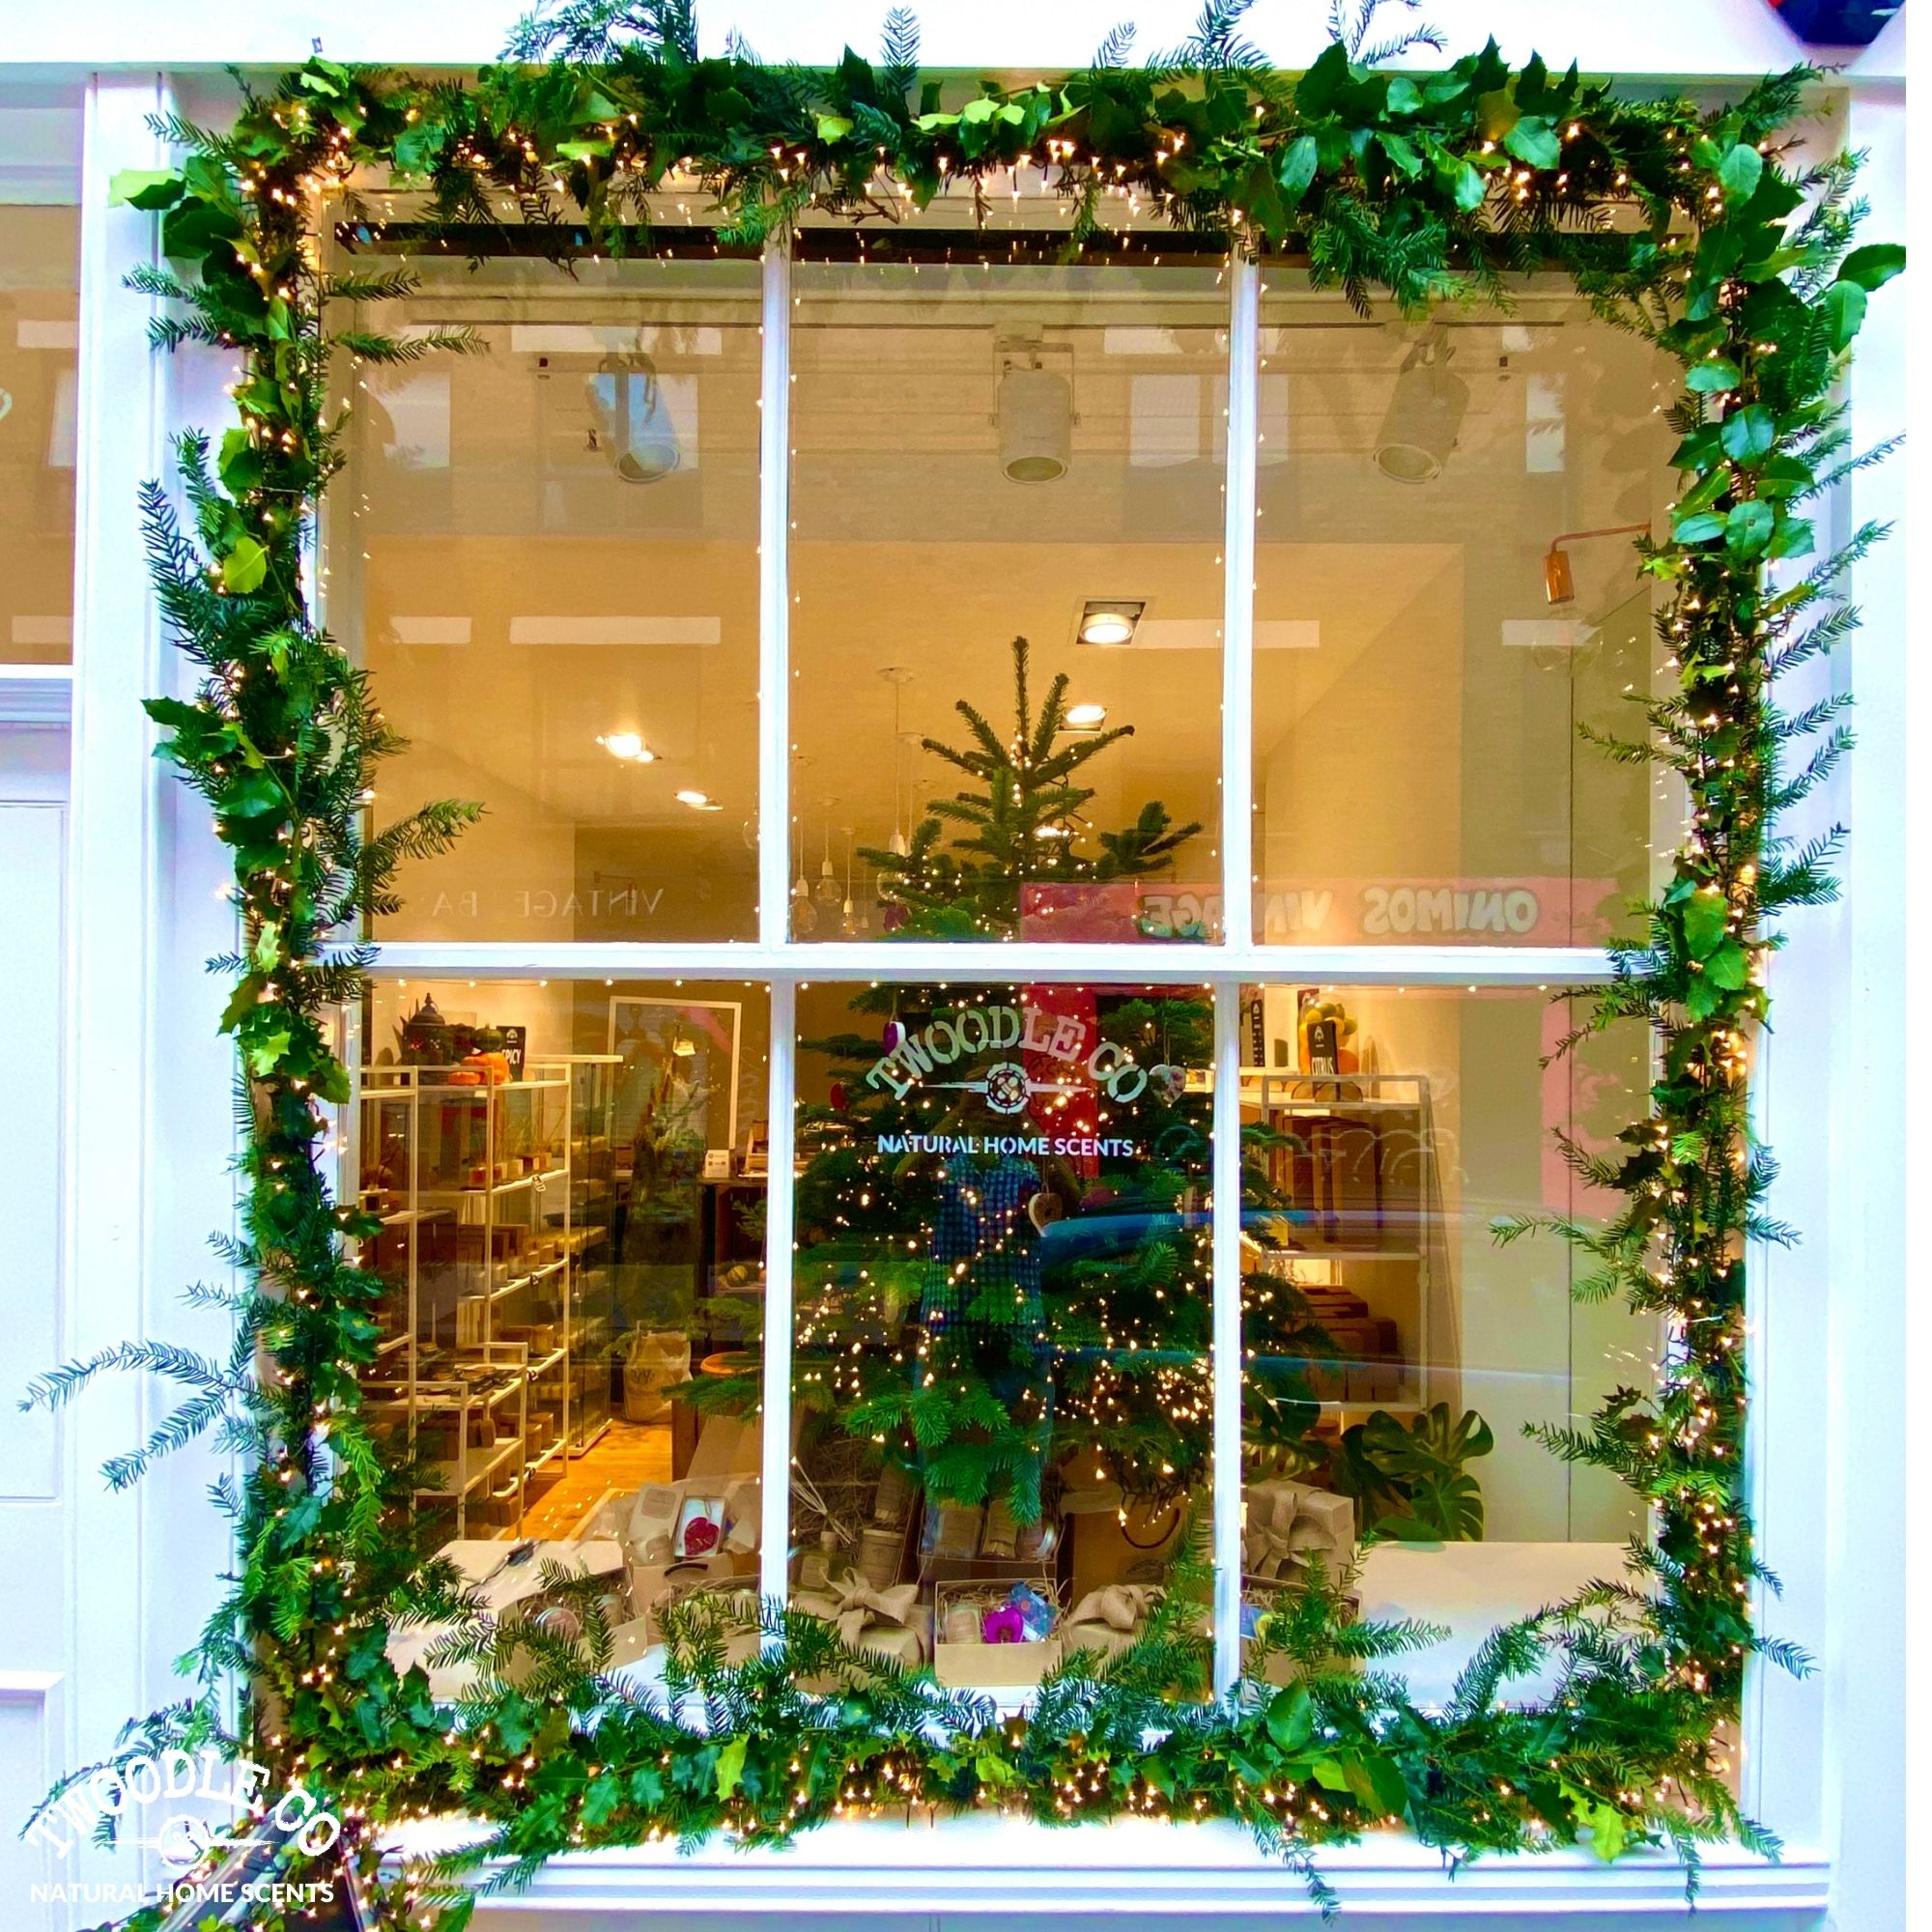 Christmas Window deck the halls byTwoodle co natural home scents